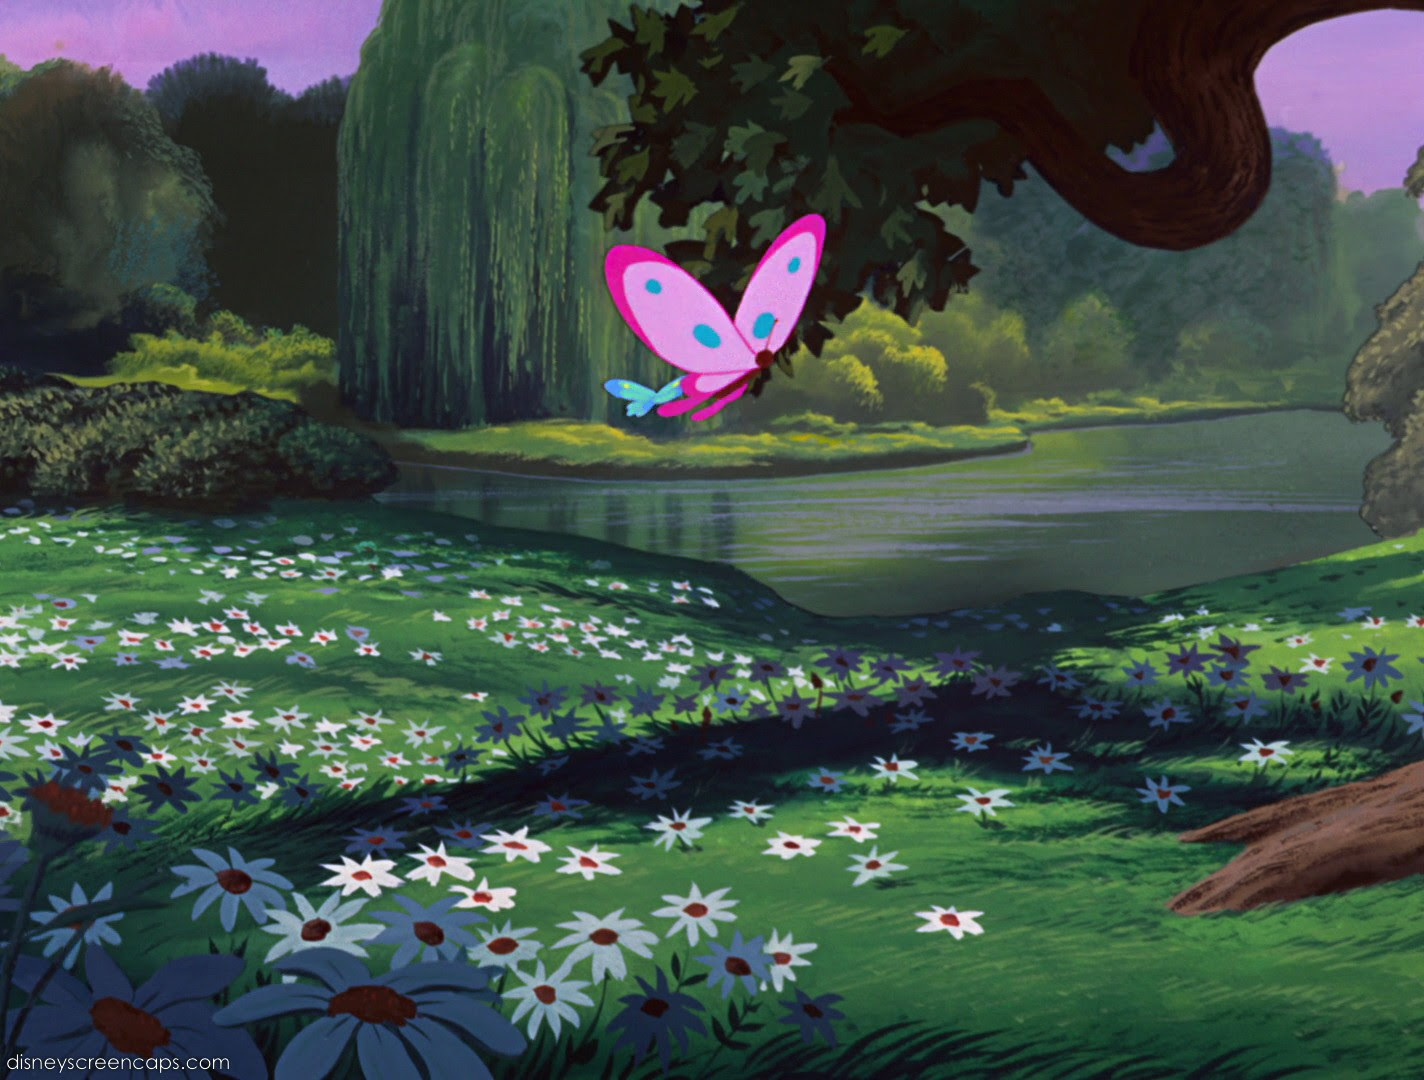 Disney Crossover Images Empty Backdrop From Alice In Wonderland Hd